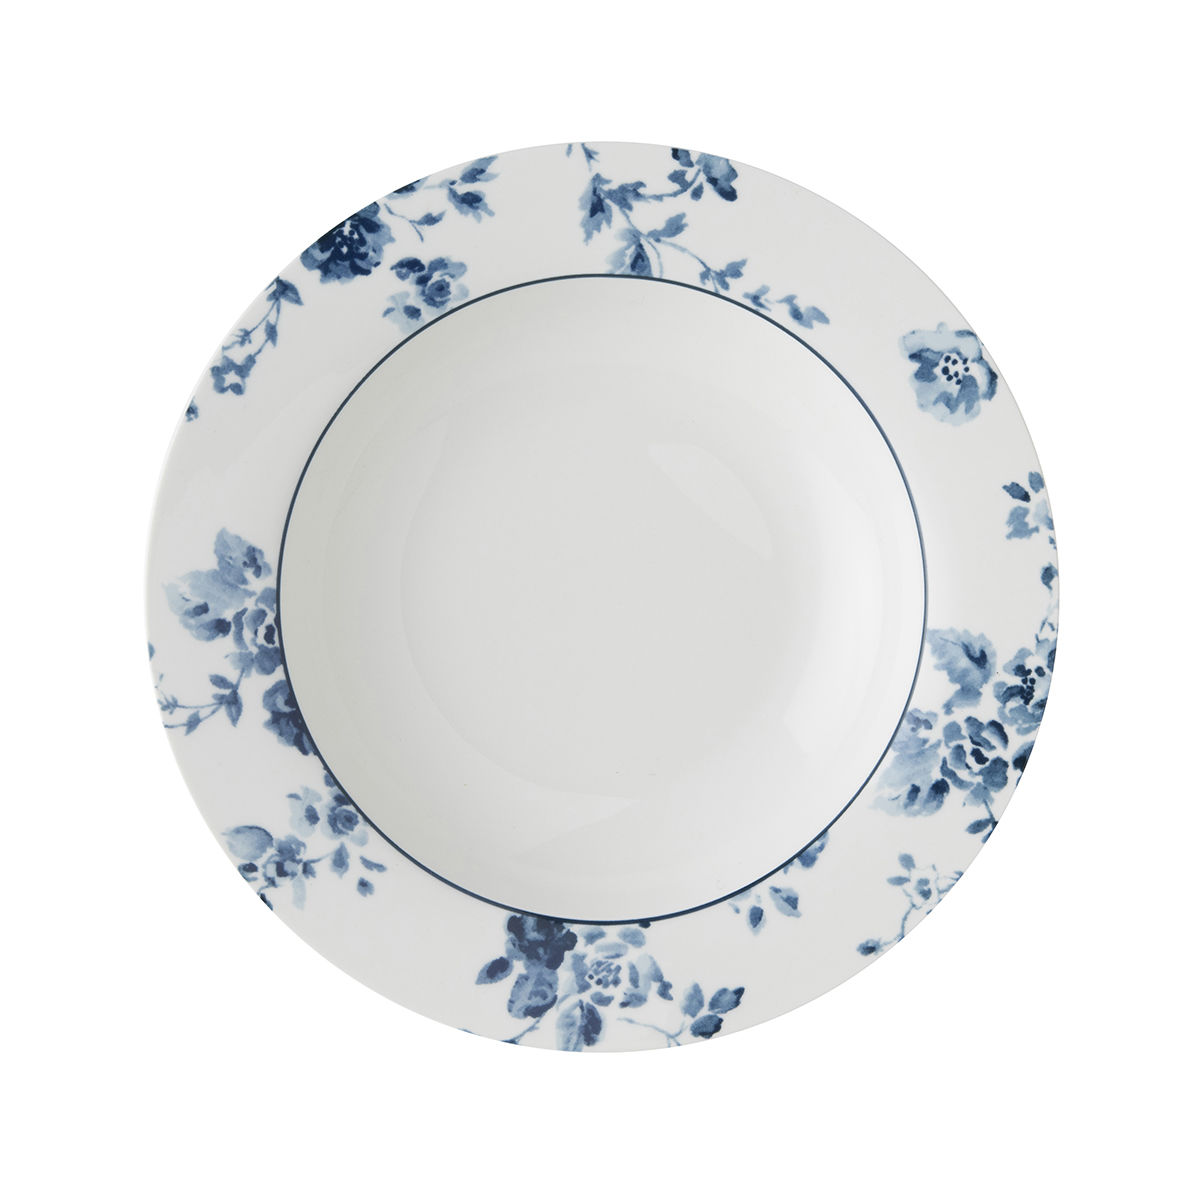 "Laura Ashley 8.4""Deep Plate China Rose - product images  of"